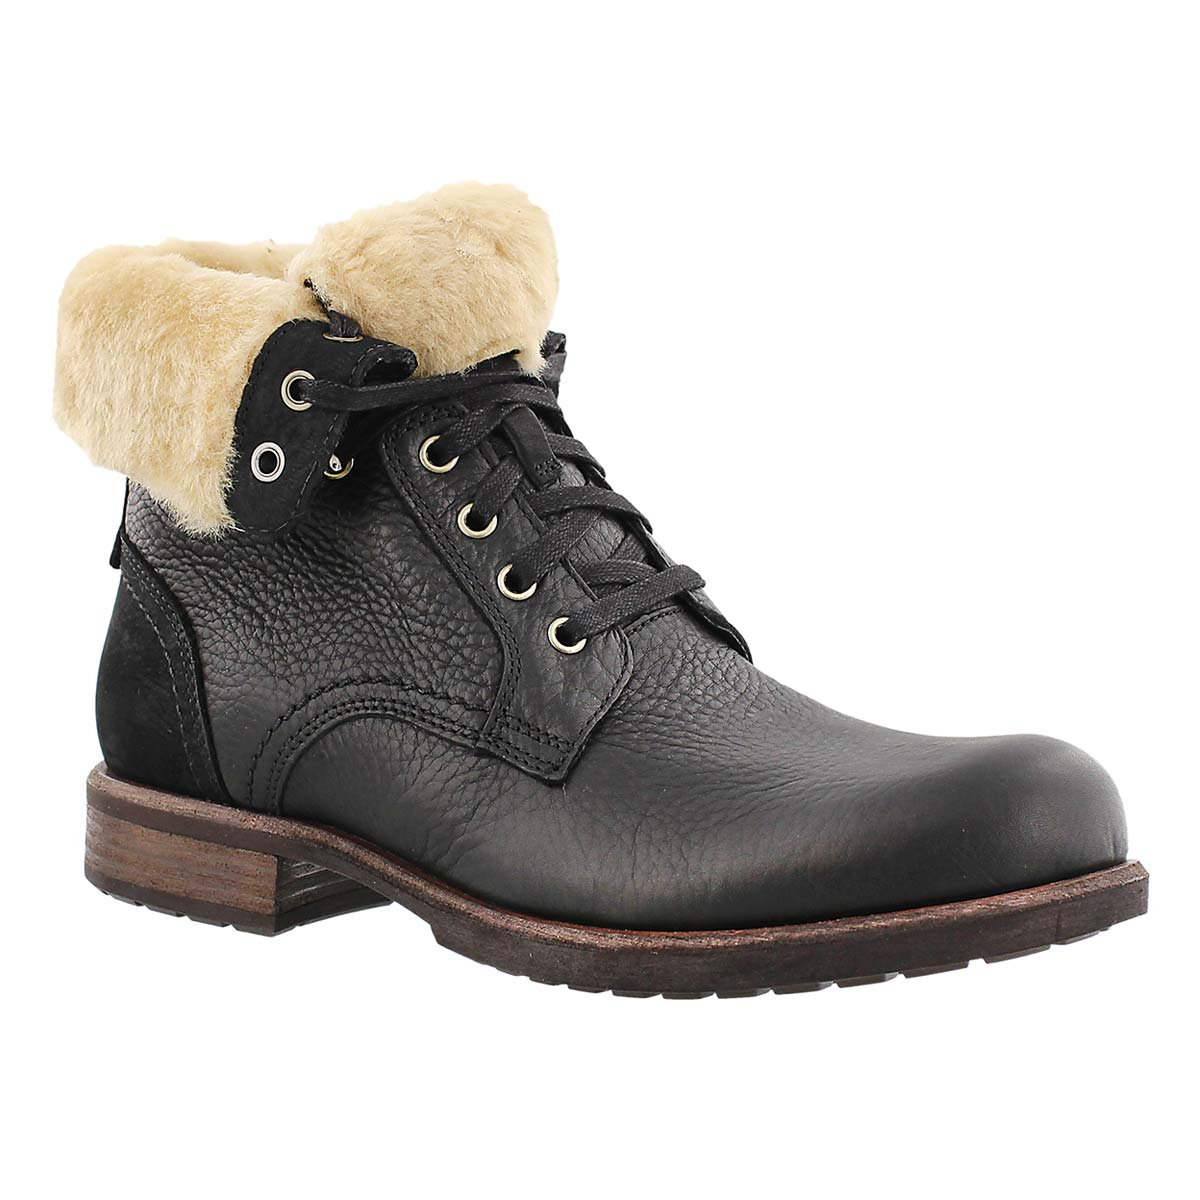 Men's LARUS black leather casual fold down boots